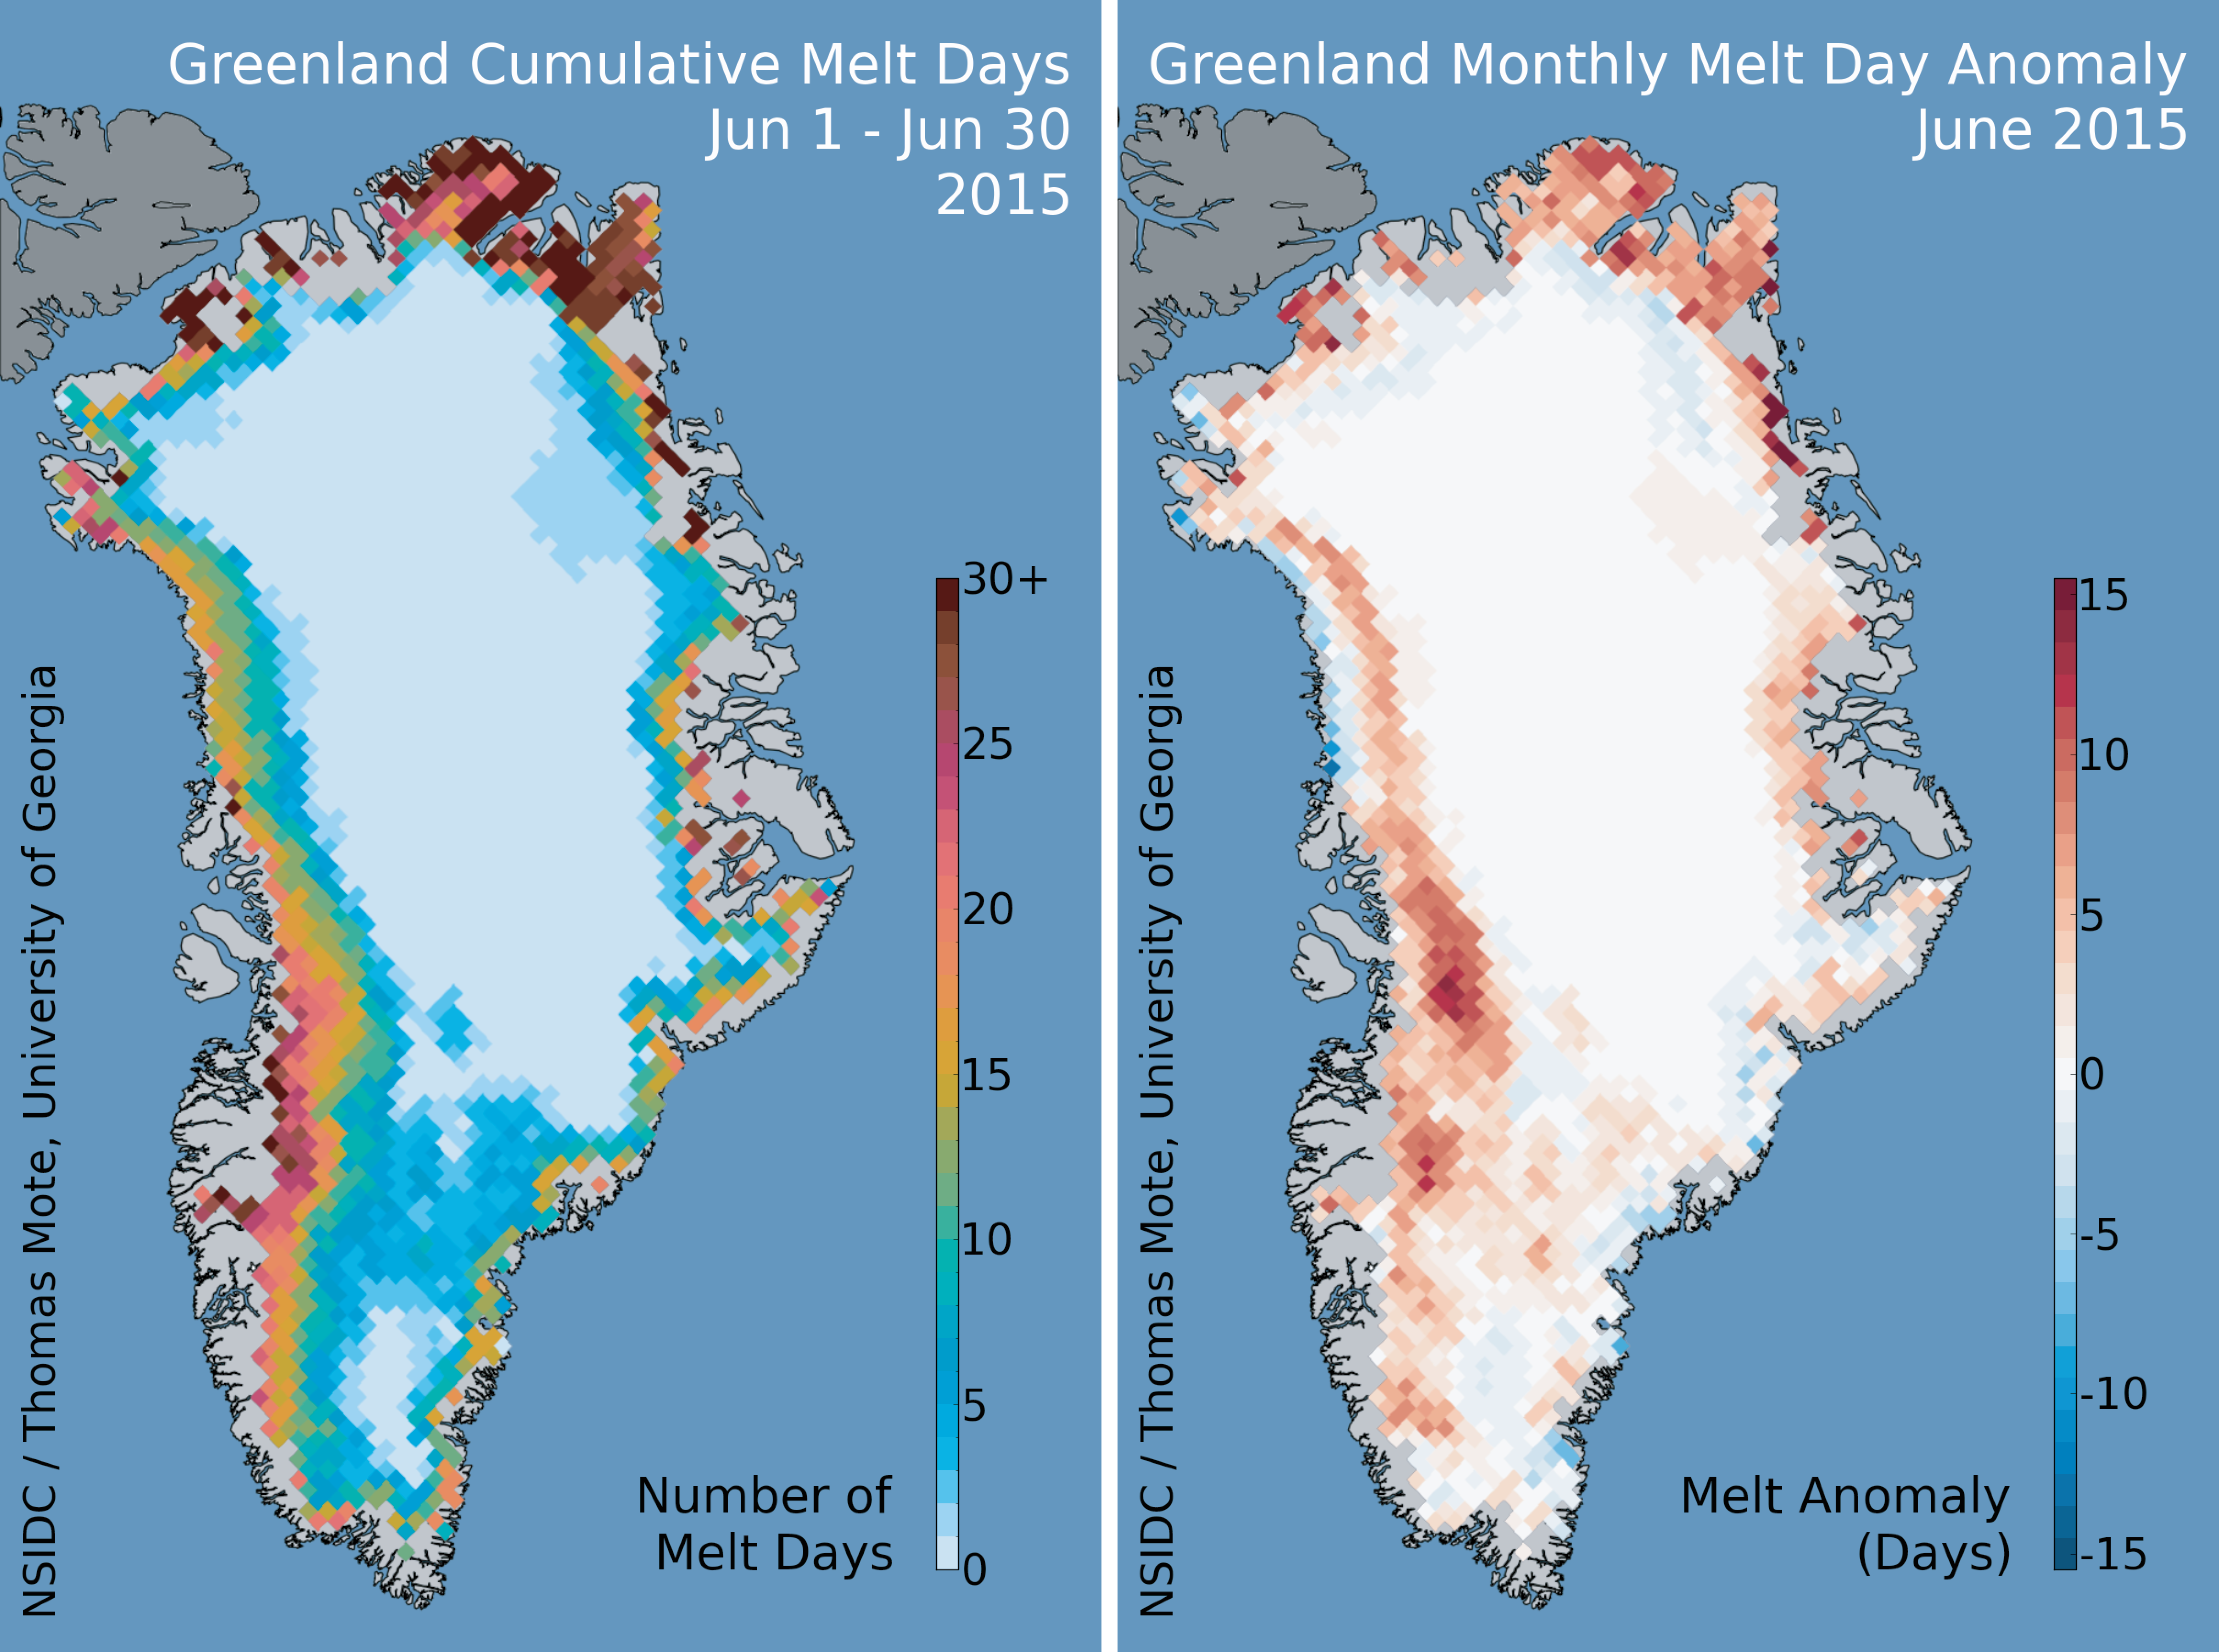 Summer heat hits cold ice sheet Greenland Ice Sheet Today